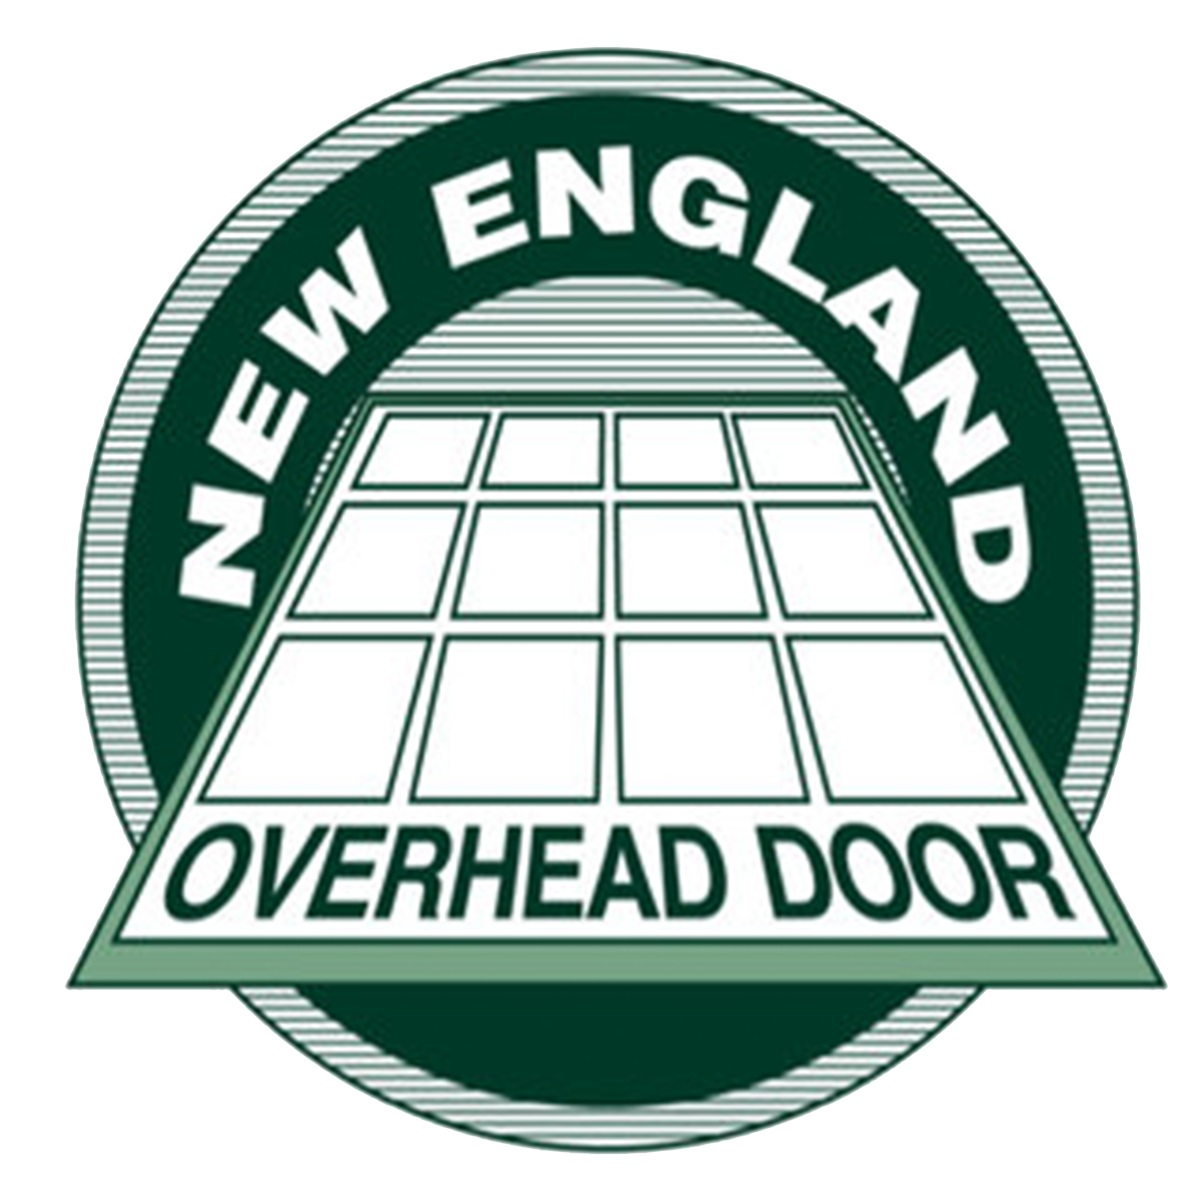 New England Overhead Door